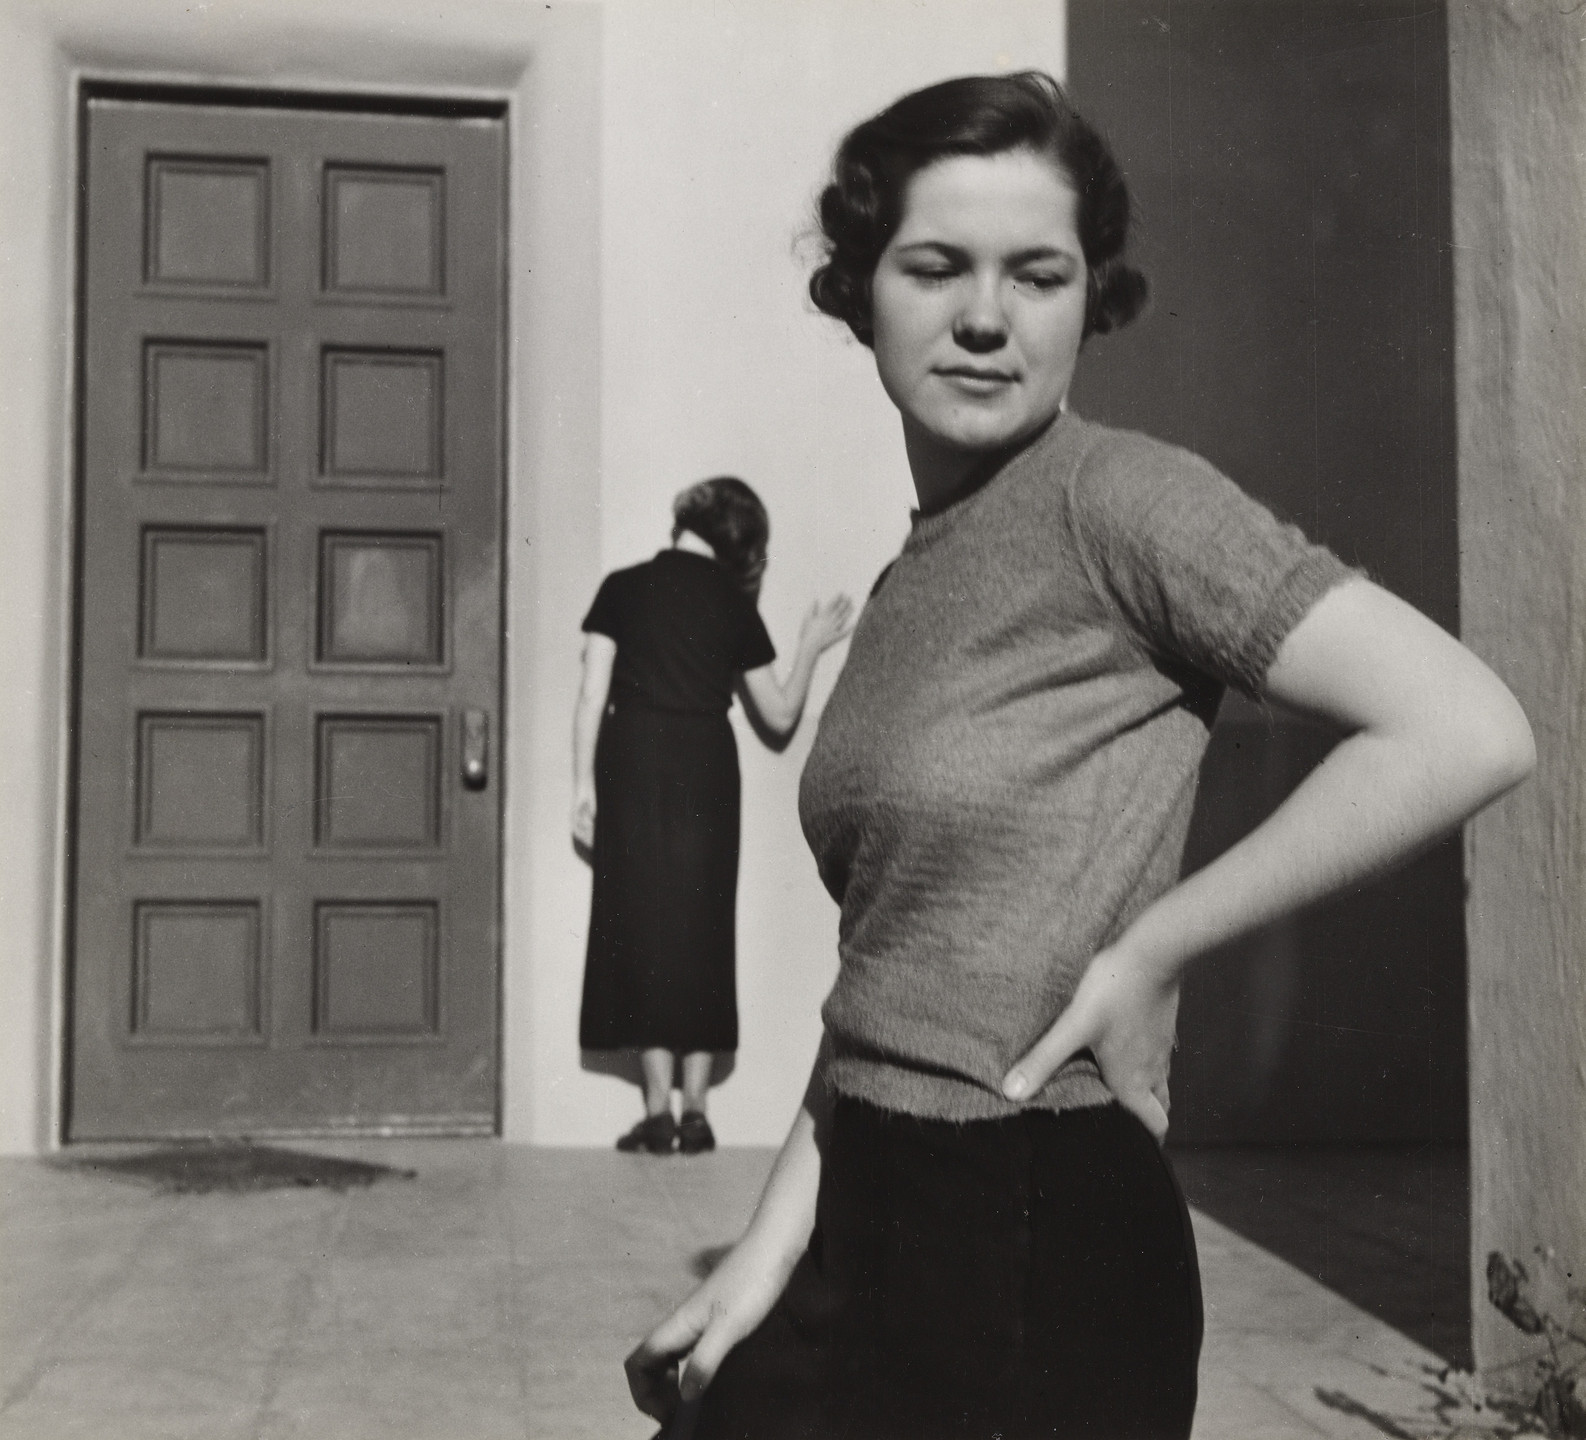 John Gutmann. Shrug of the Shoulder. 1935